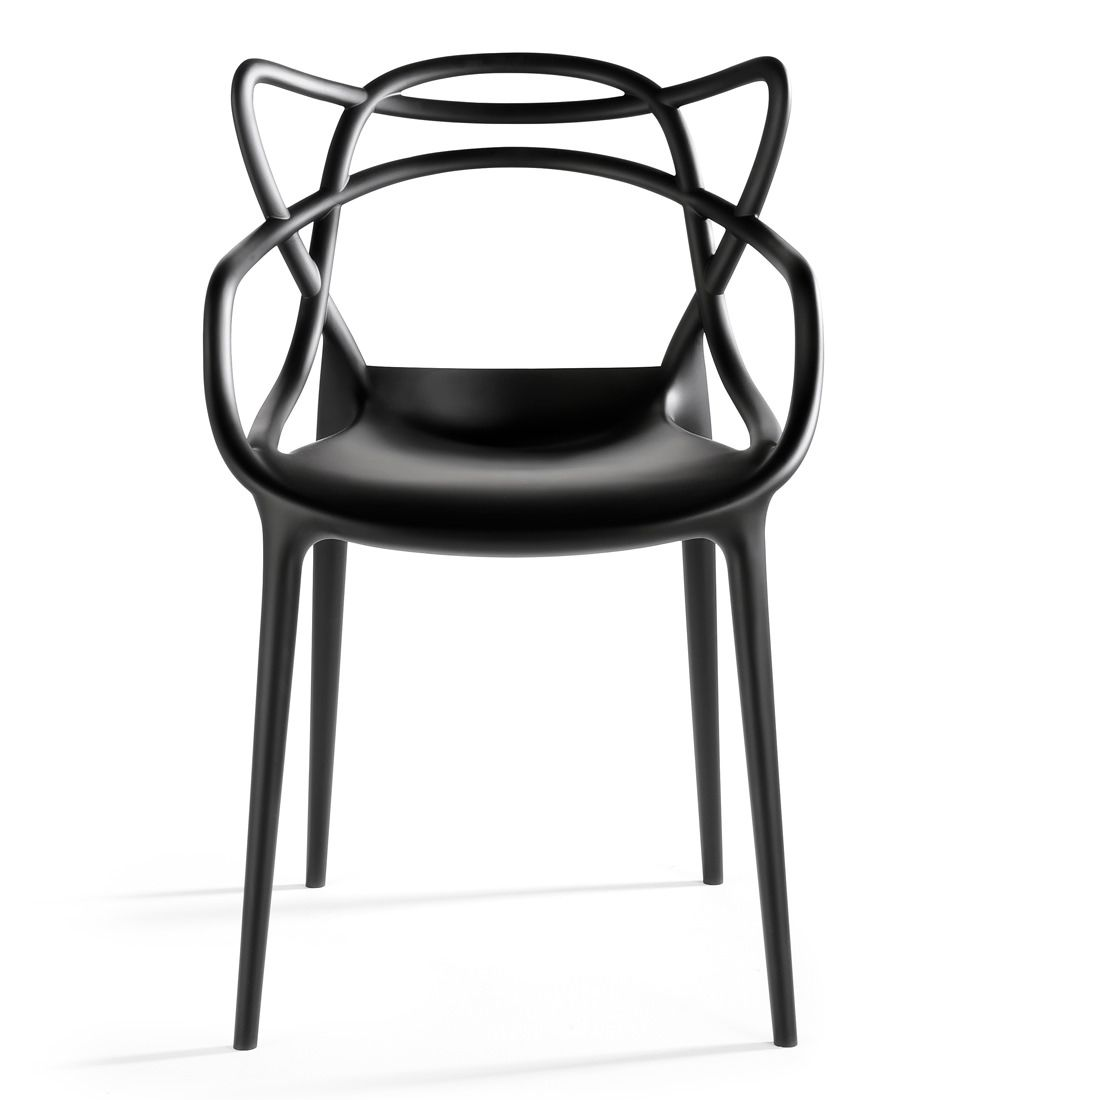 2xhome Black Stackable Contemporary Modern Designer Molded Plastic Chairs Assembled With Arms Open Back Armchairs For Kitchen Dining Chair Outdoor Patio Bedroom Masters Chair Molded Plastic Chairs Plastic Chair